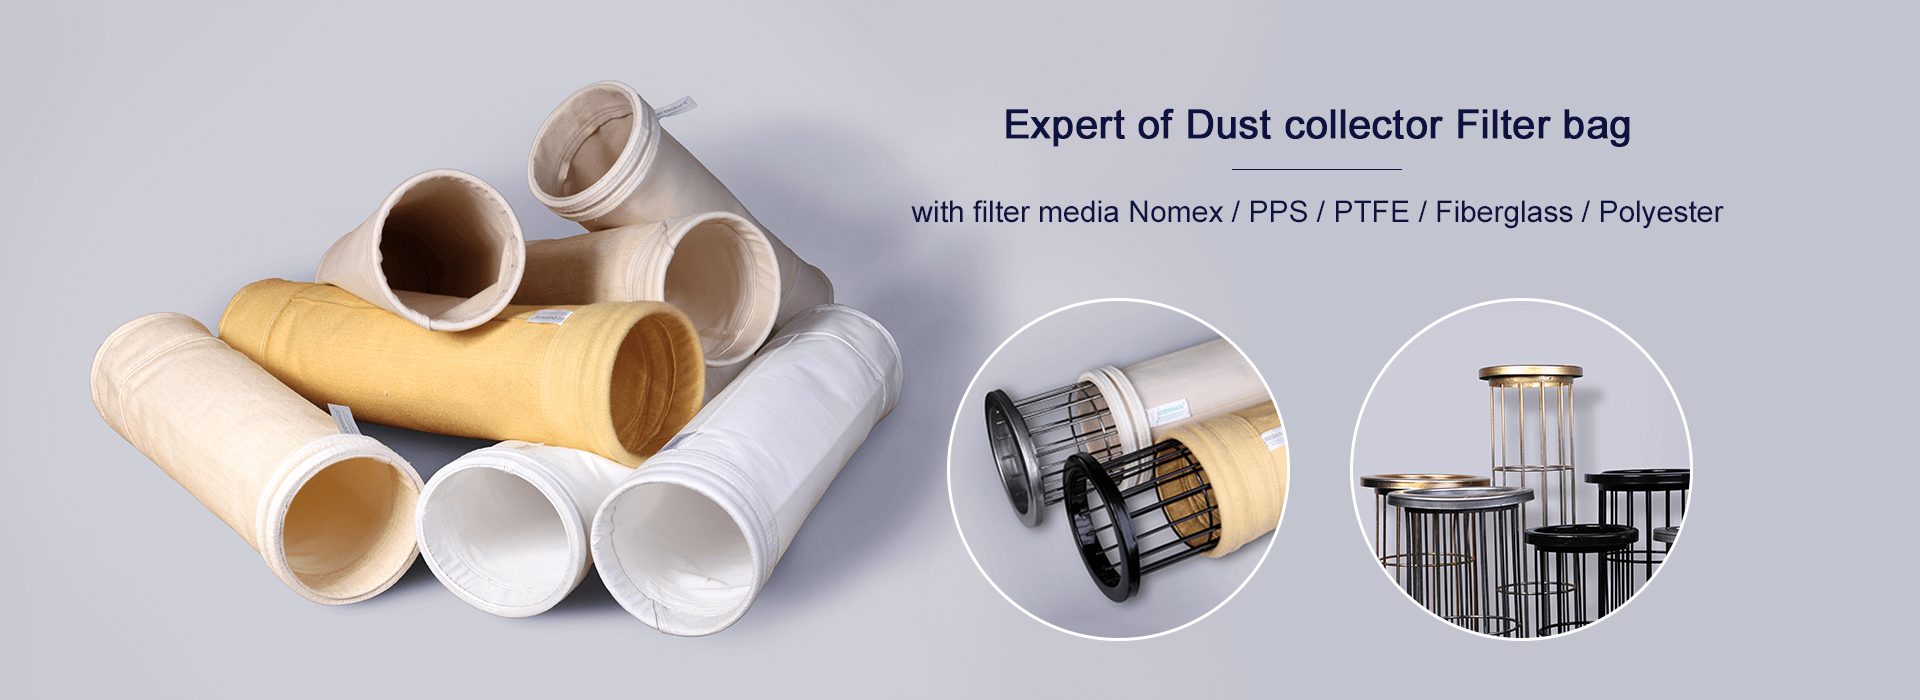 Expert of Dust collector Filter bag